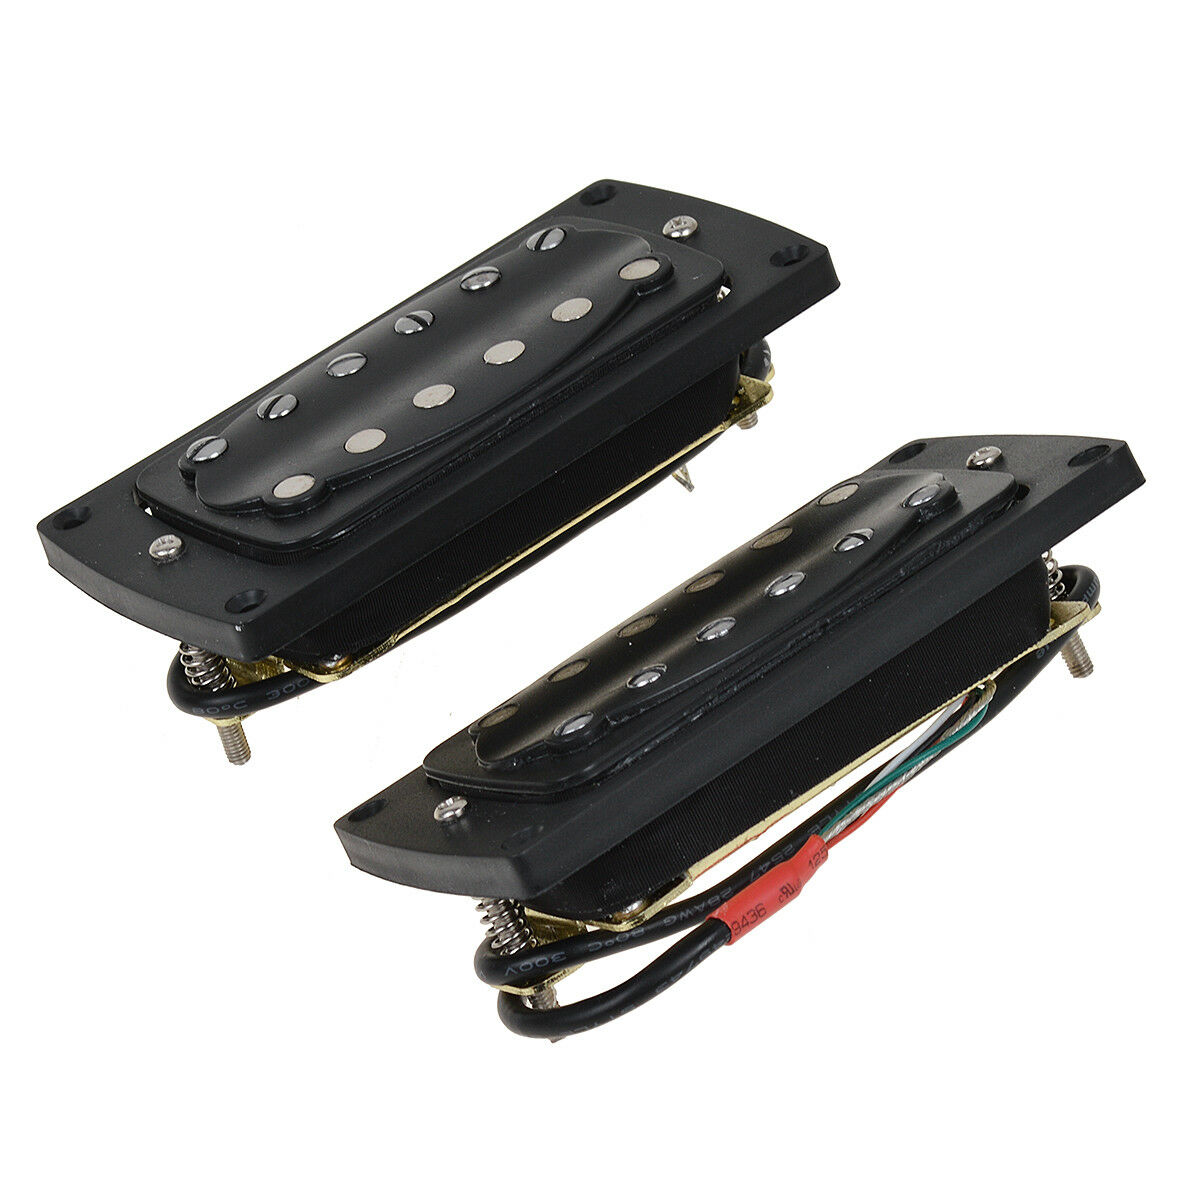 humbucker double coil bridge and neck pickup set for electric guitar parts black 634458667234 ebay. Black Bedroom Furniture Sets. Home Design Ideas